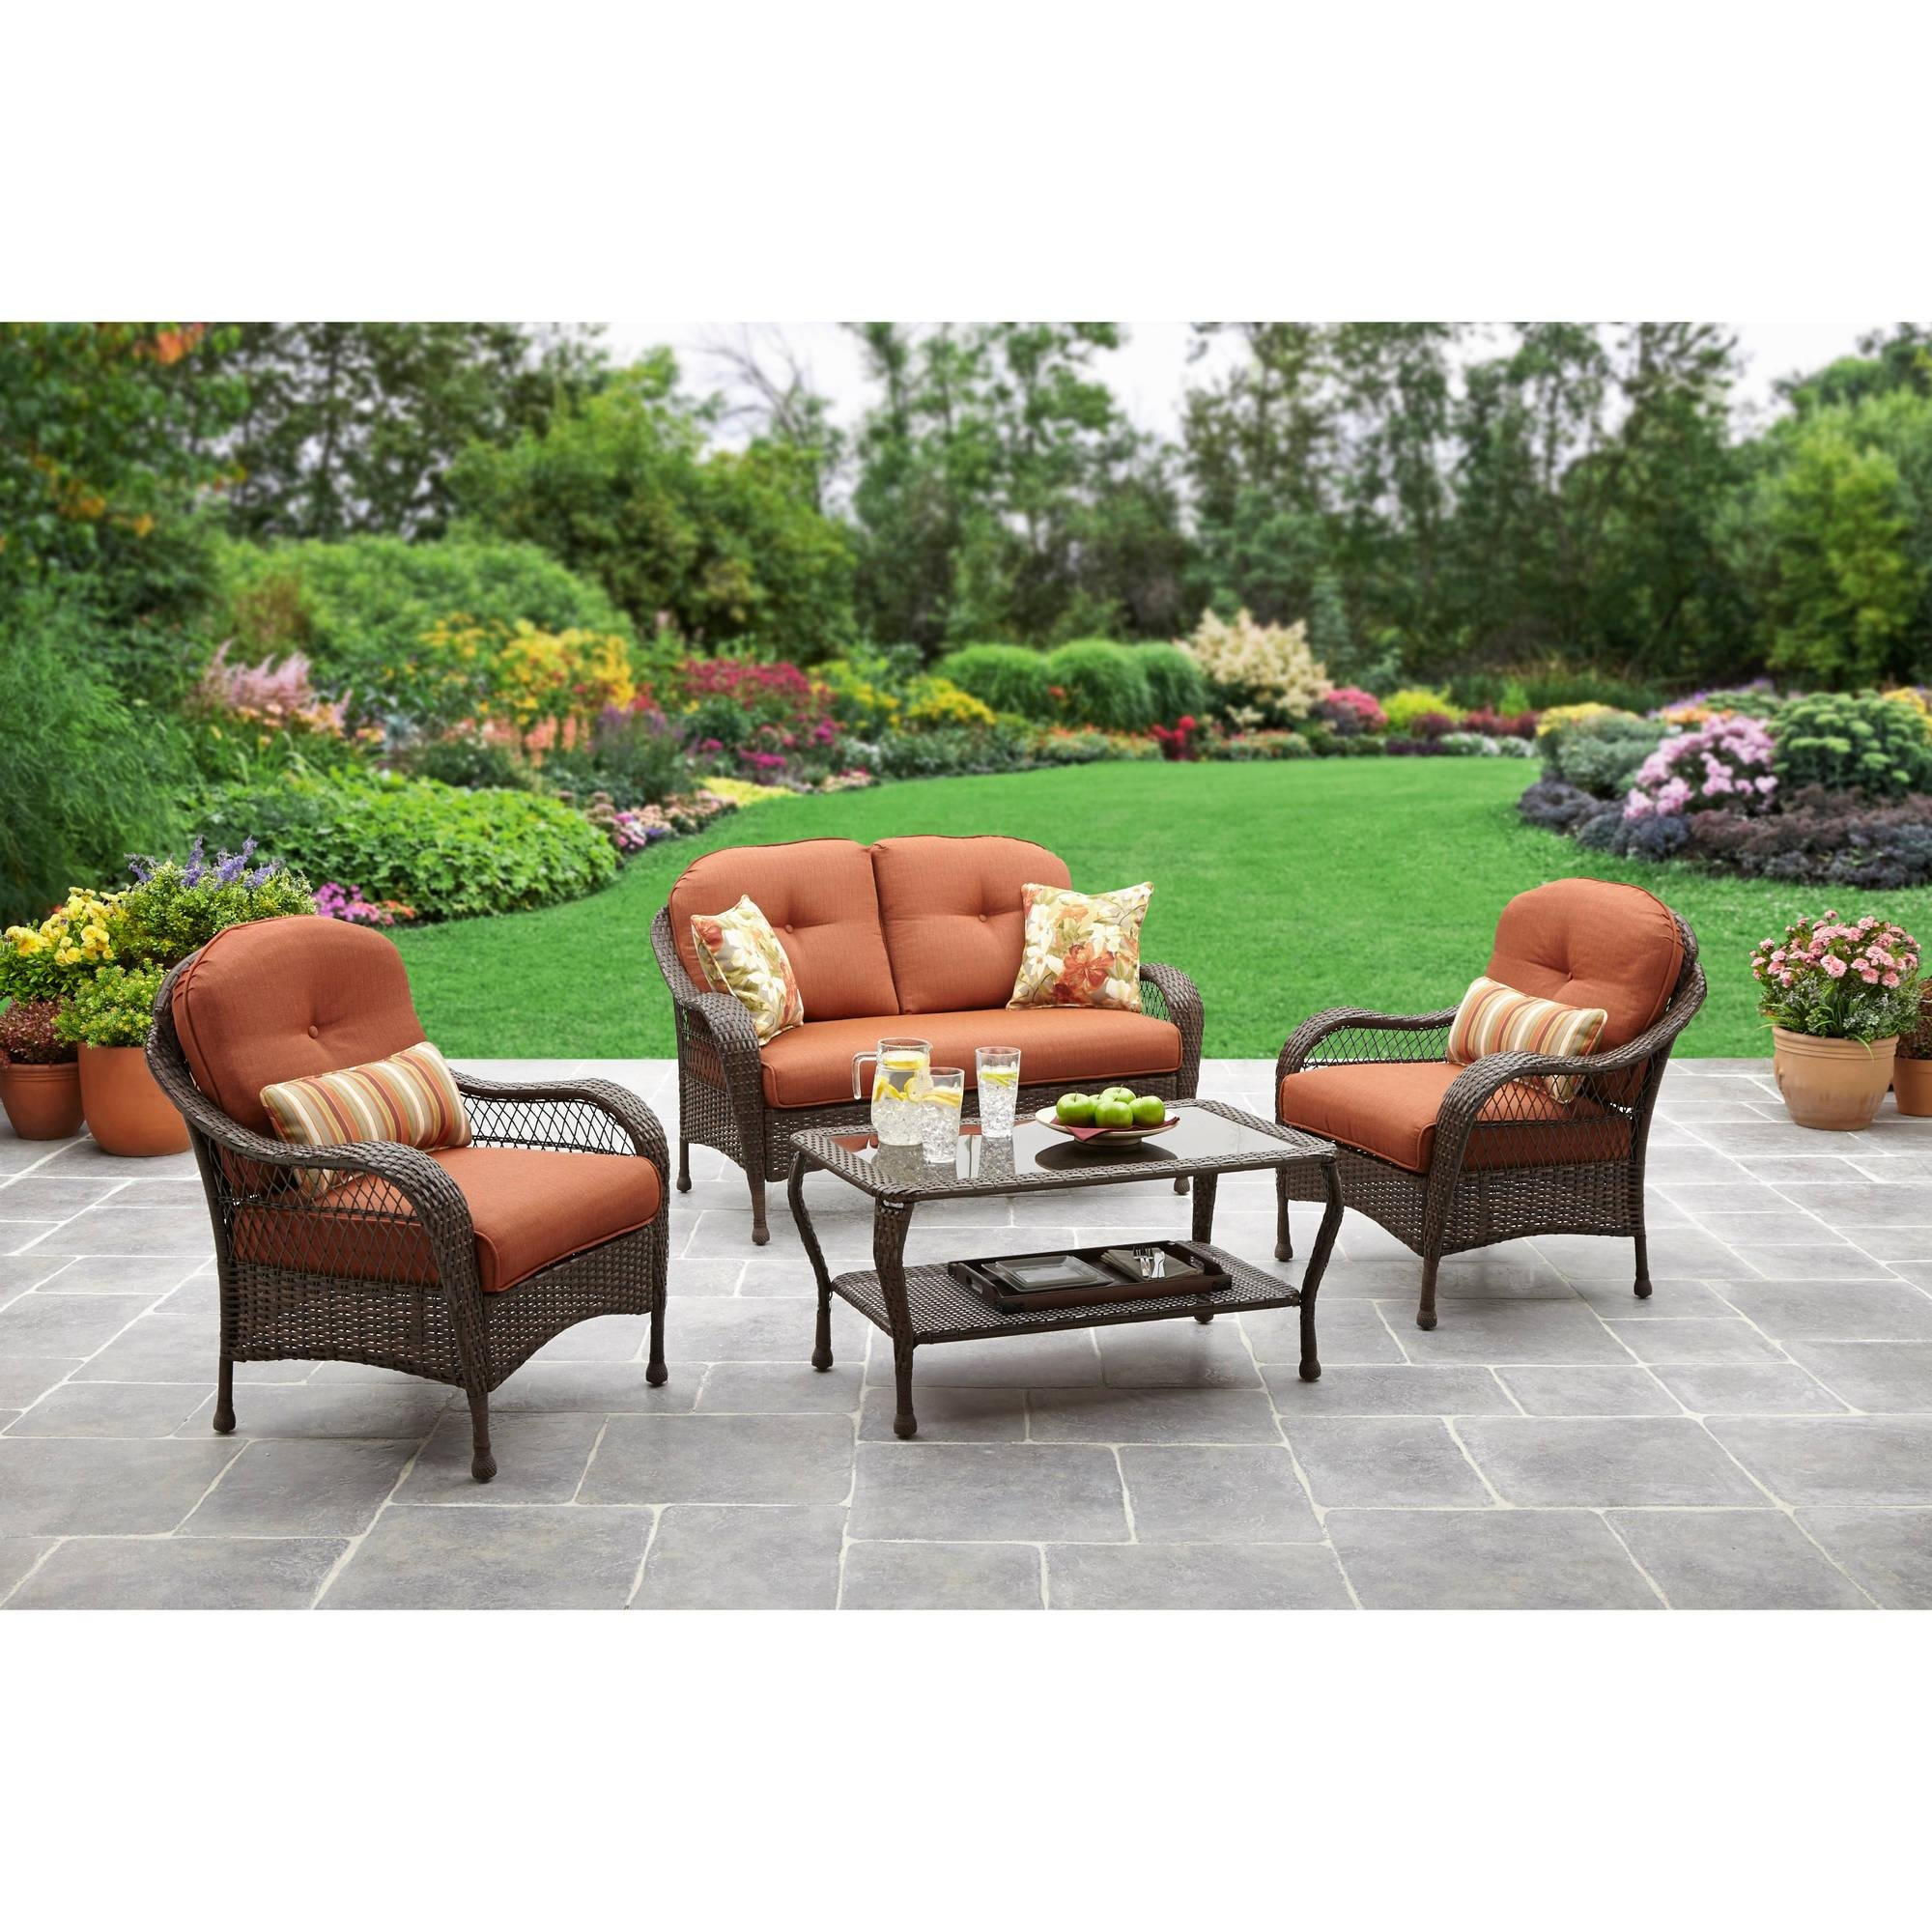 Best Rated in Patio Conversation Sets & Helpful Customer Reviews